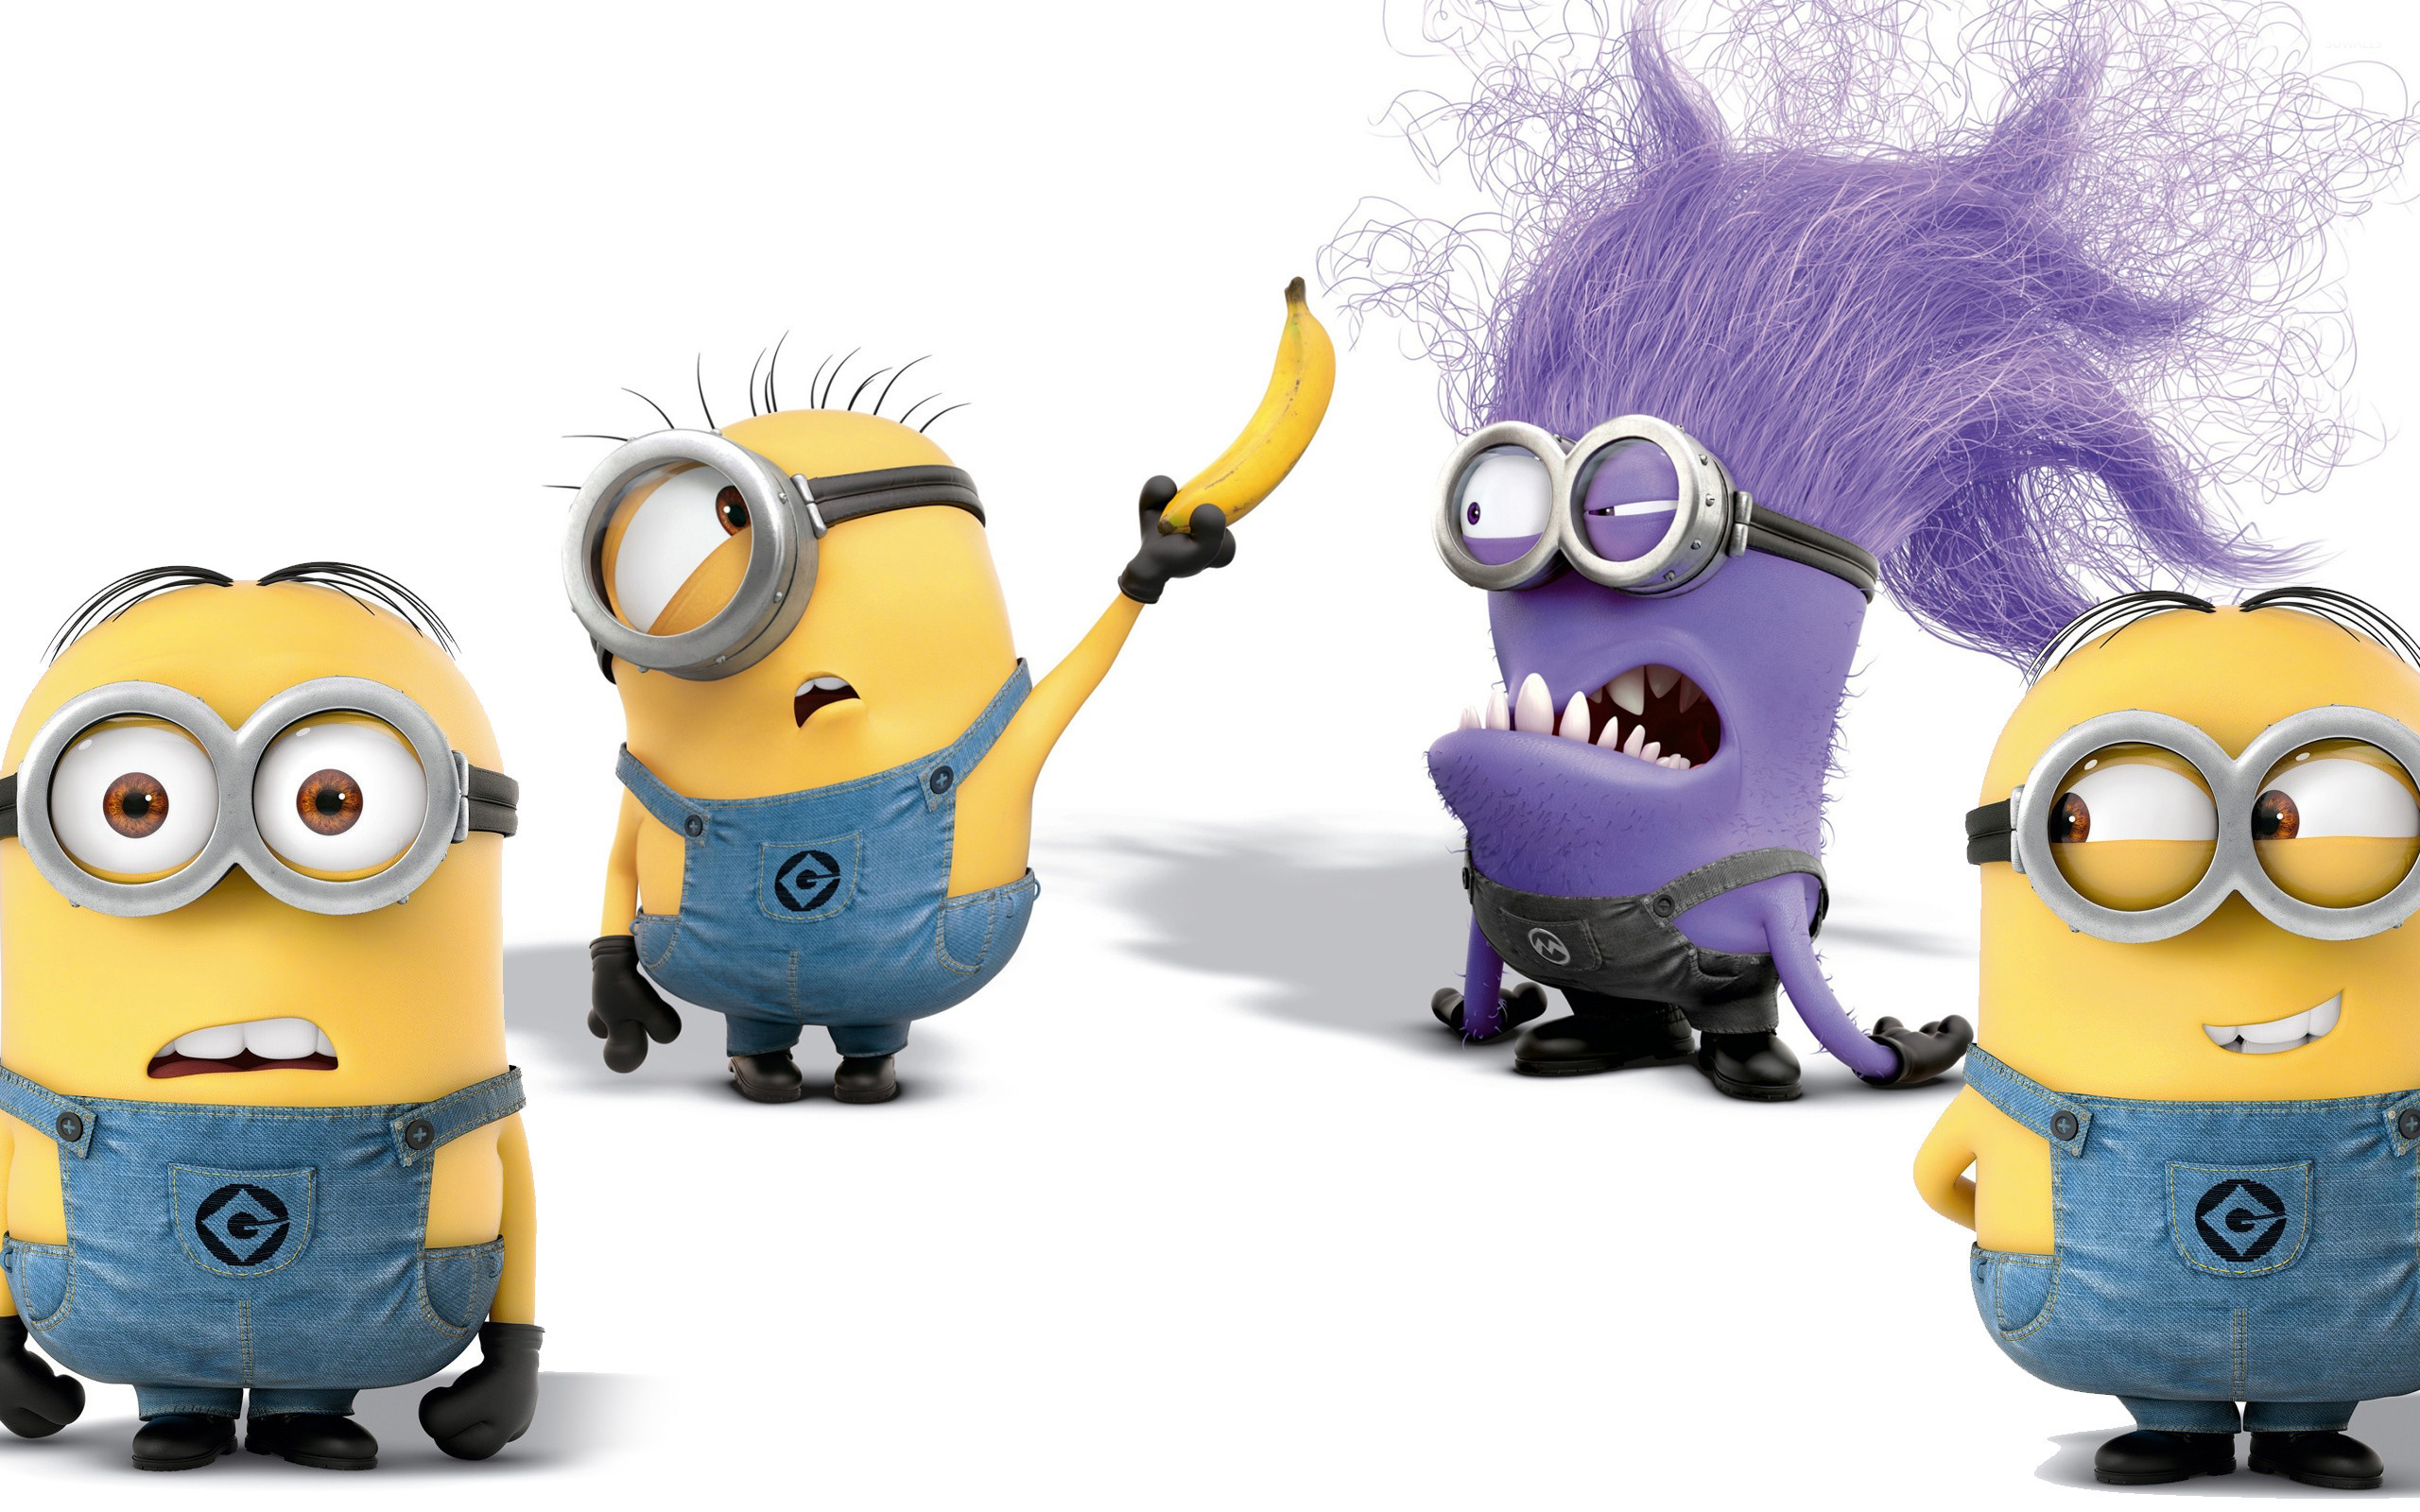 Minion screensavers and wallpaper wallpapersafari - Despicable me minion screensaver ...